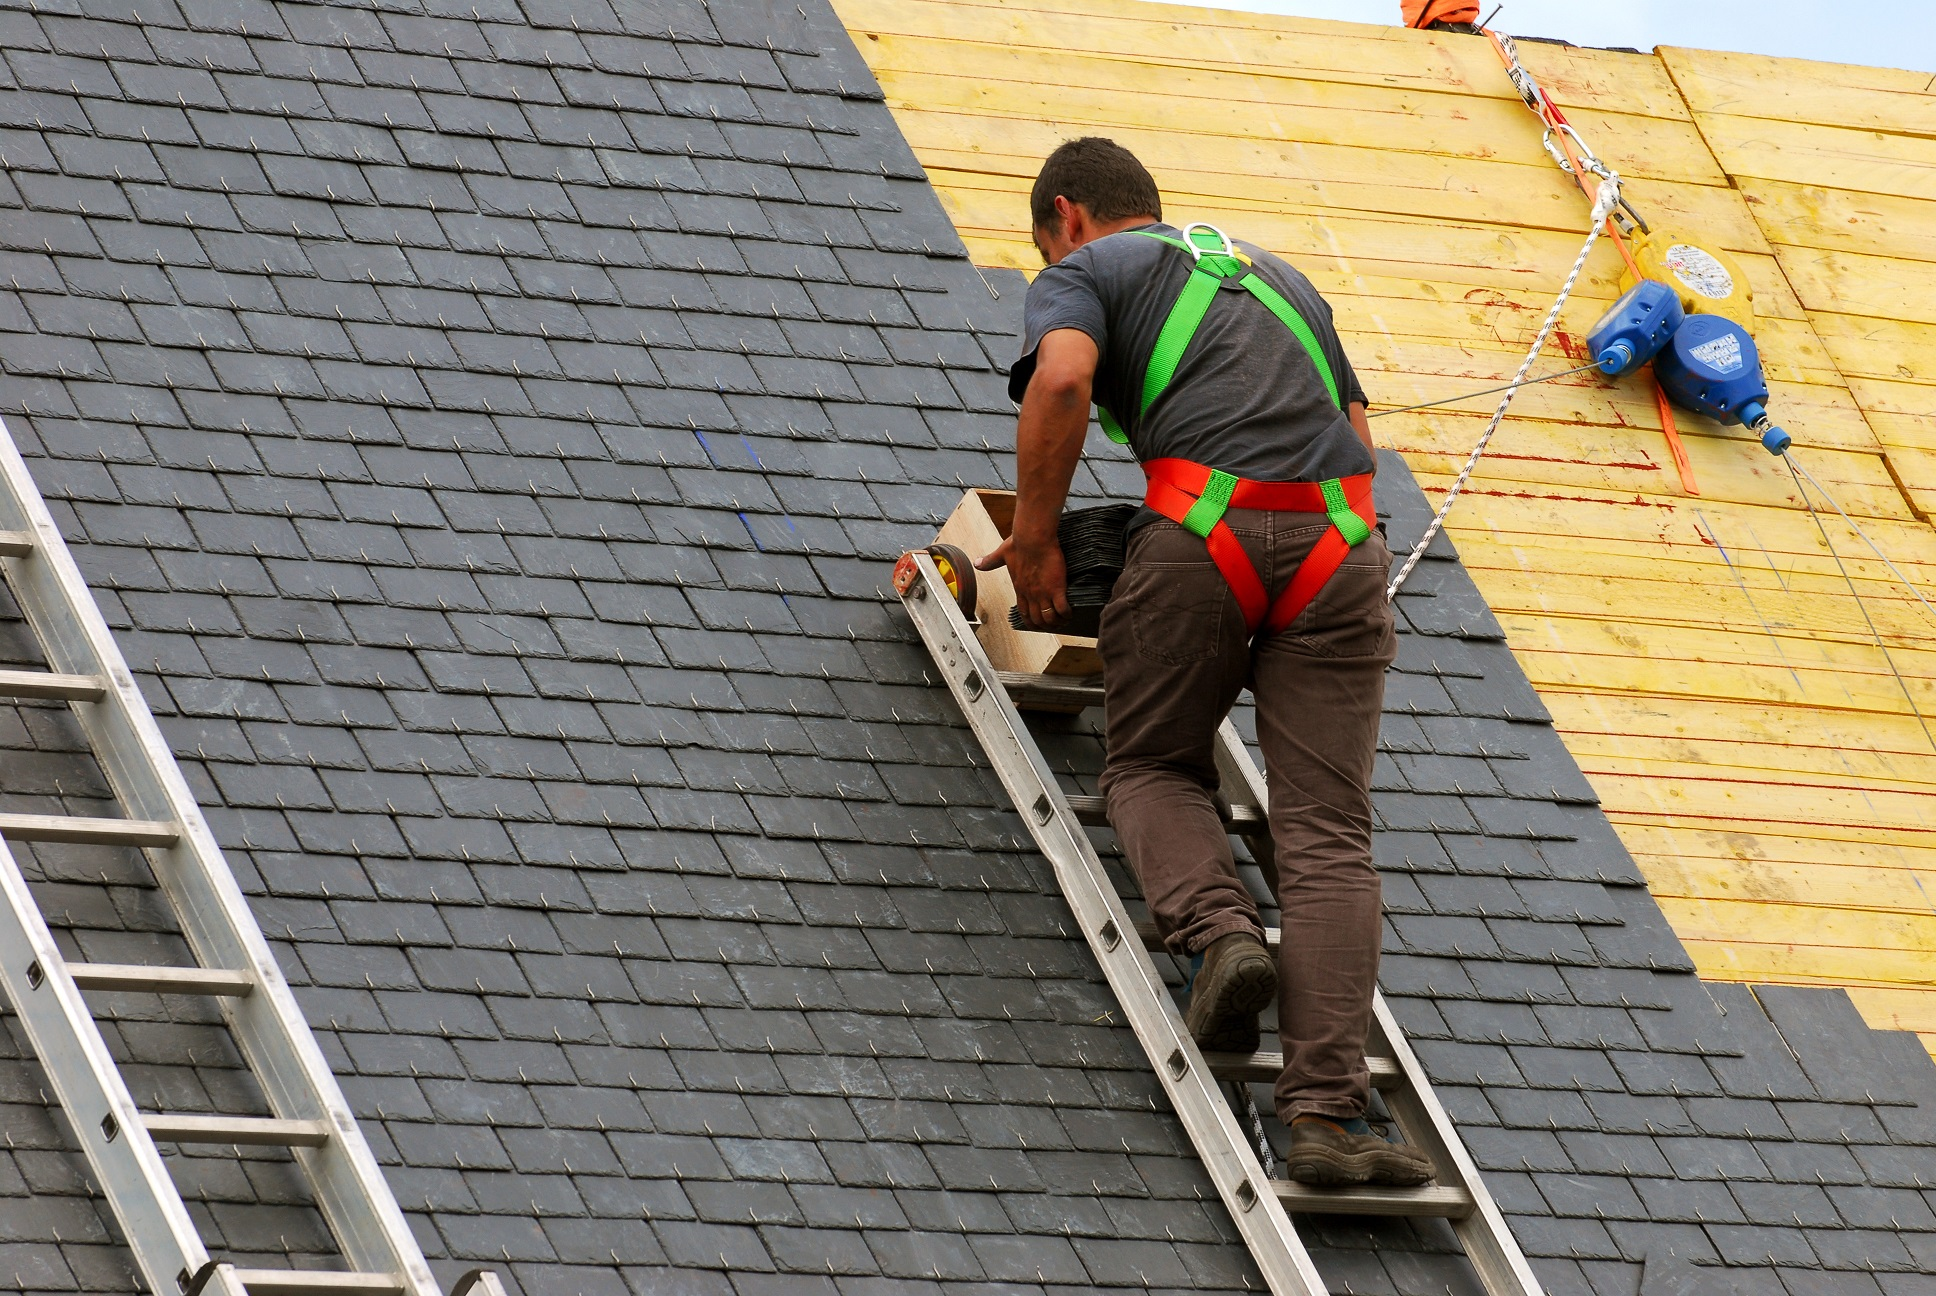 Roofing Contractors In Chennai | Metal Roofing Contractors In Chennai | roofinmg  contractors in tambaram | Quality Roofs Pvt Ltd | Roofing Contractors In Chennai, Metal Roofing Contractors In Chennai, Roofing Contractors In Chennai, Metal Roofing Contractors In Chennai, Roofing Contractors In Chennai - GL57430